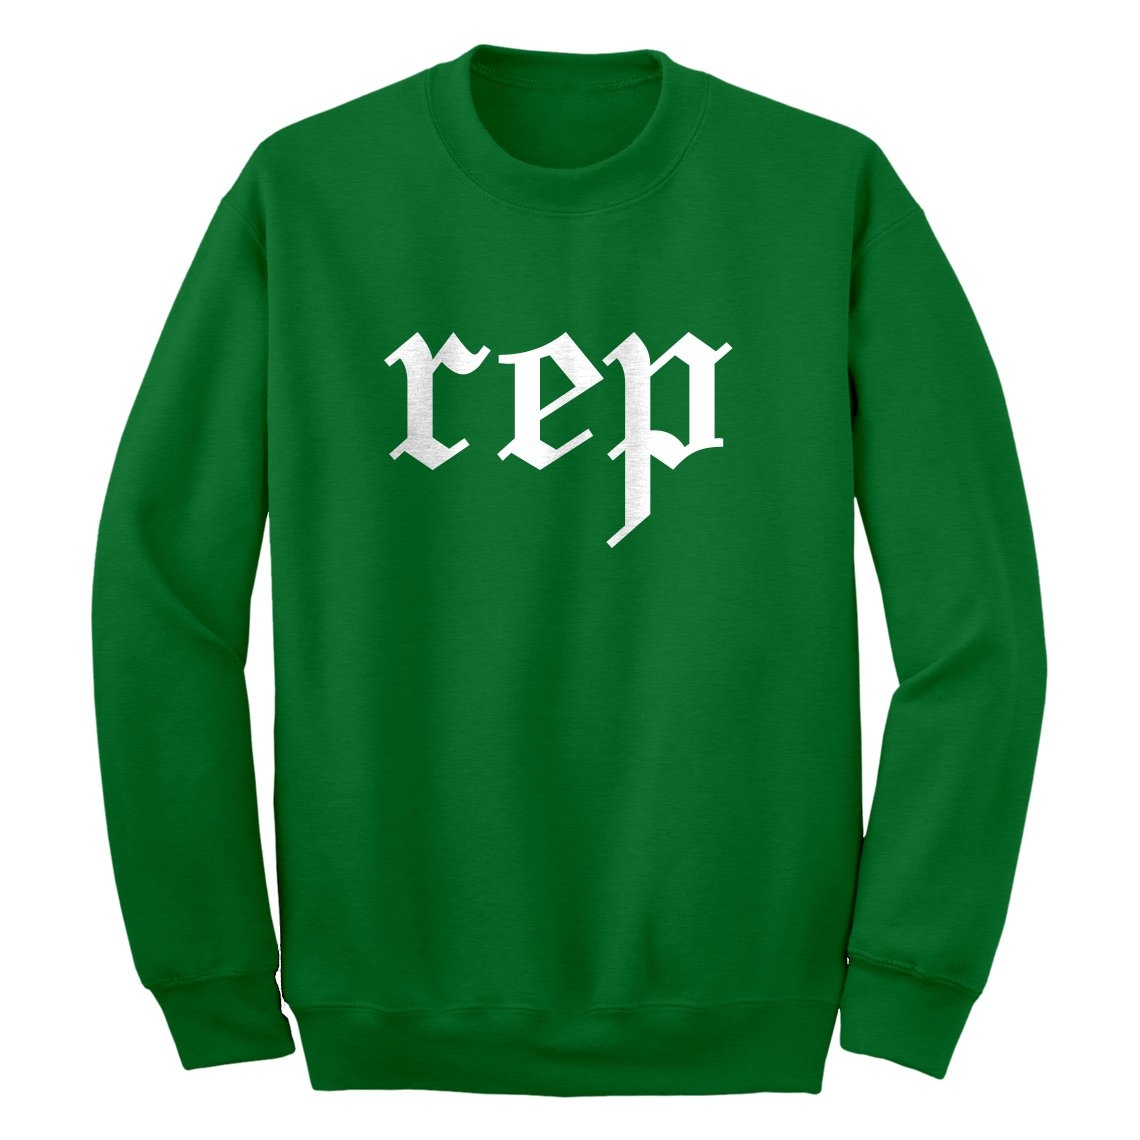 Indica Plateau Reputation Crewneck Sweatshirt 3437-C